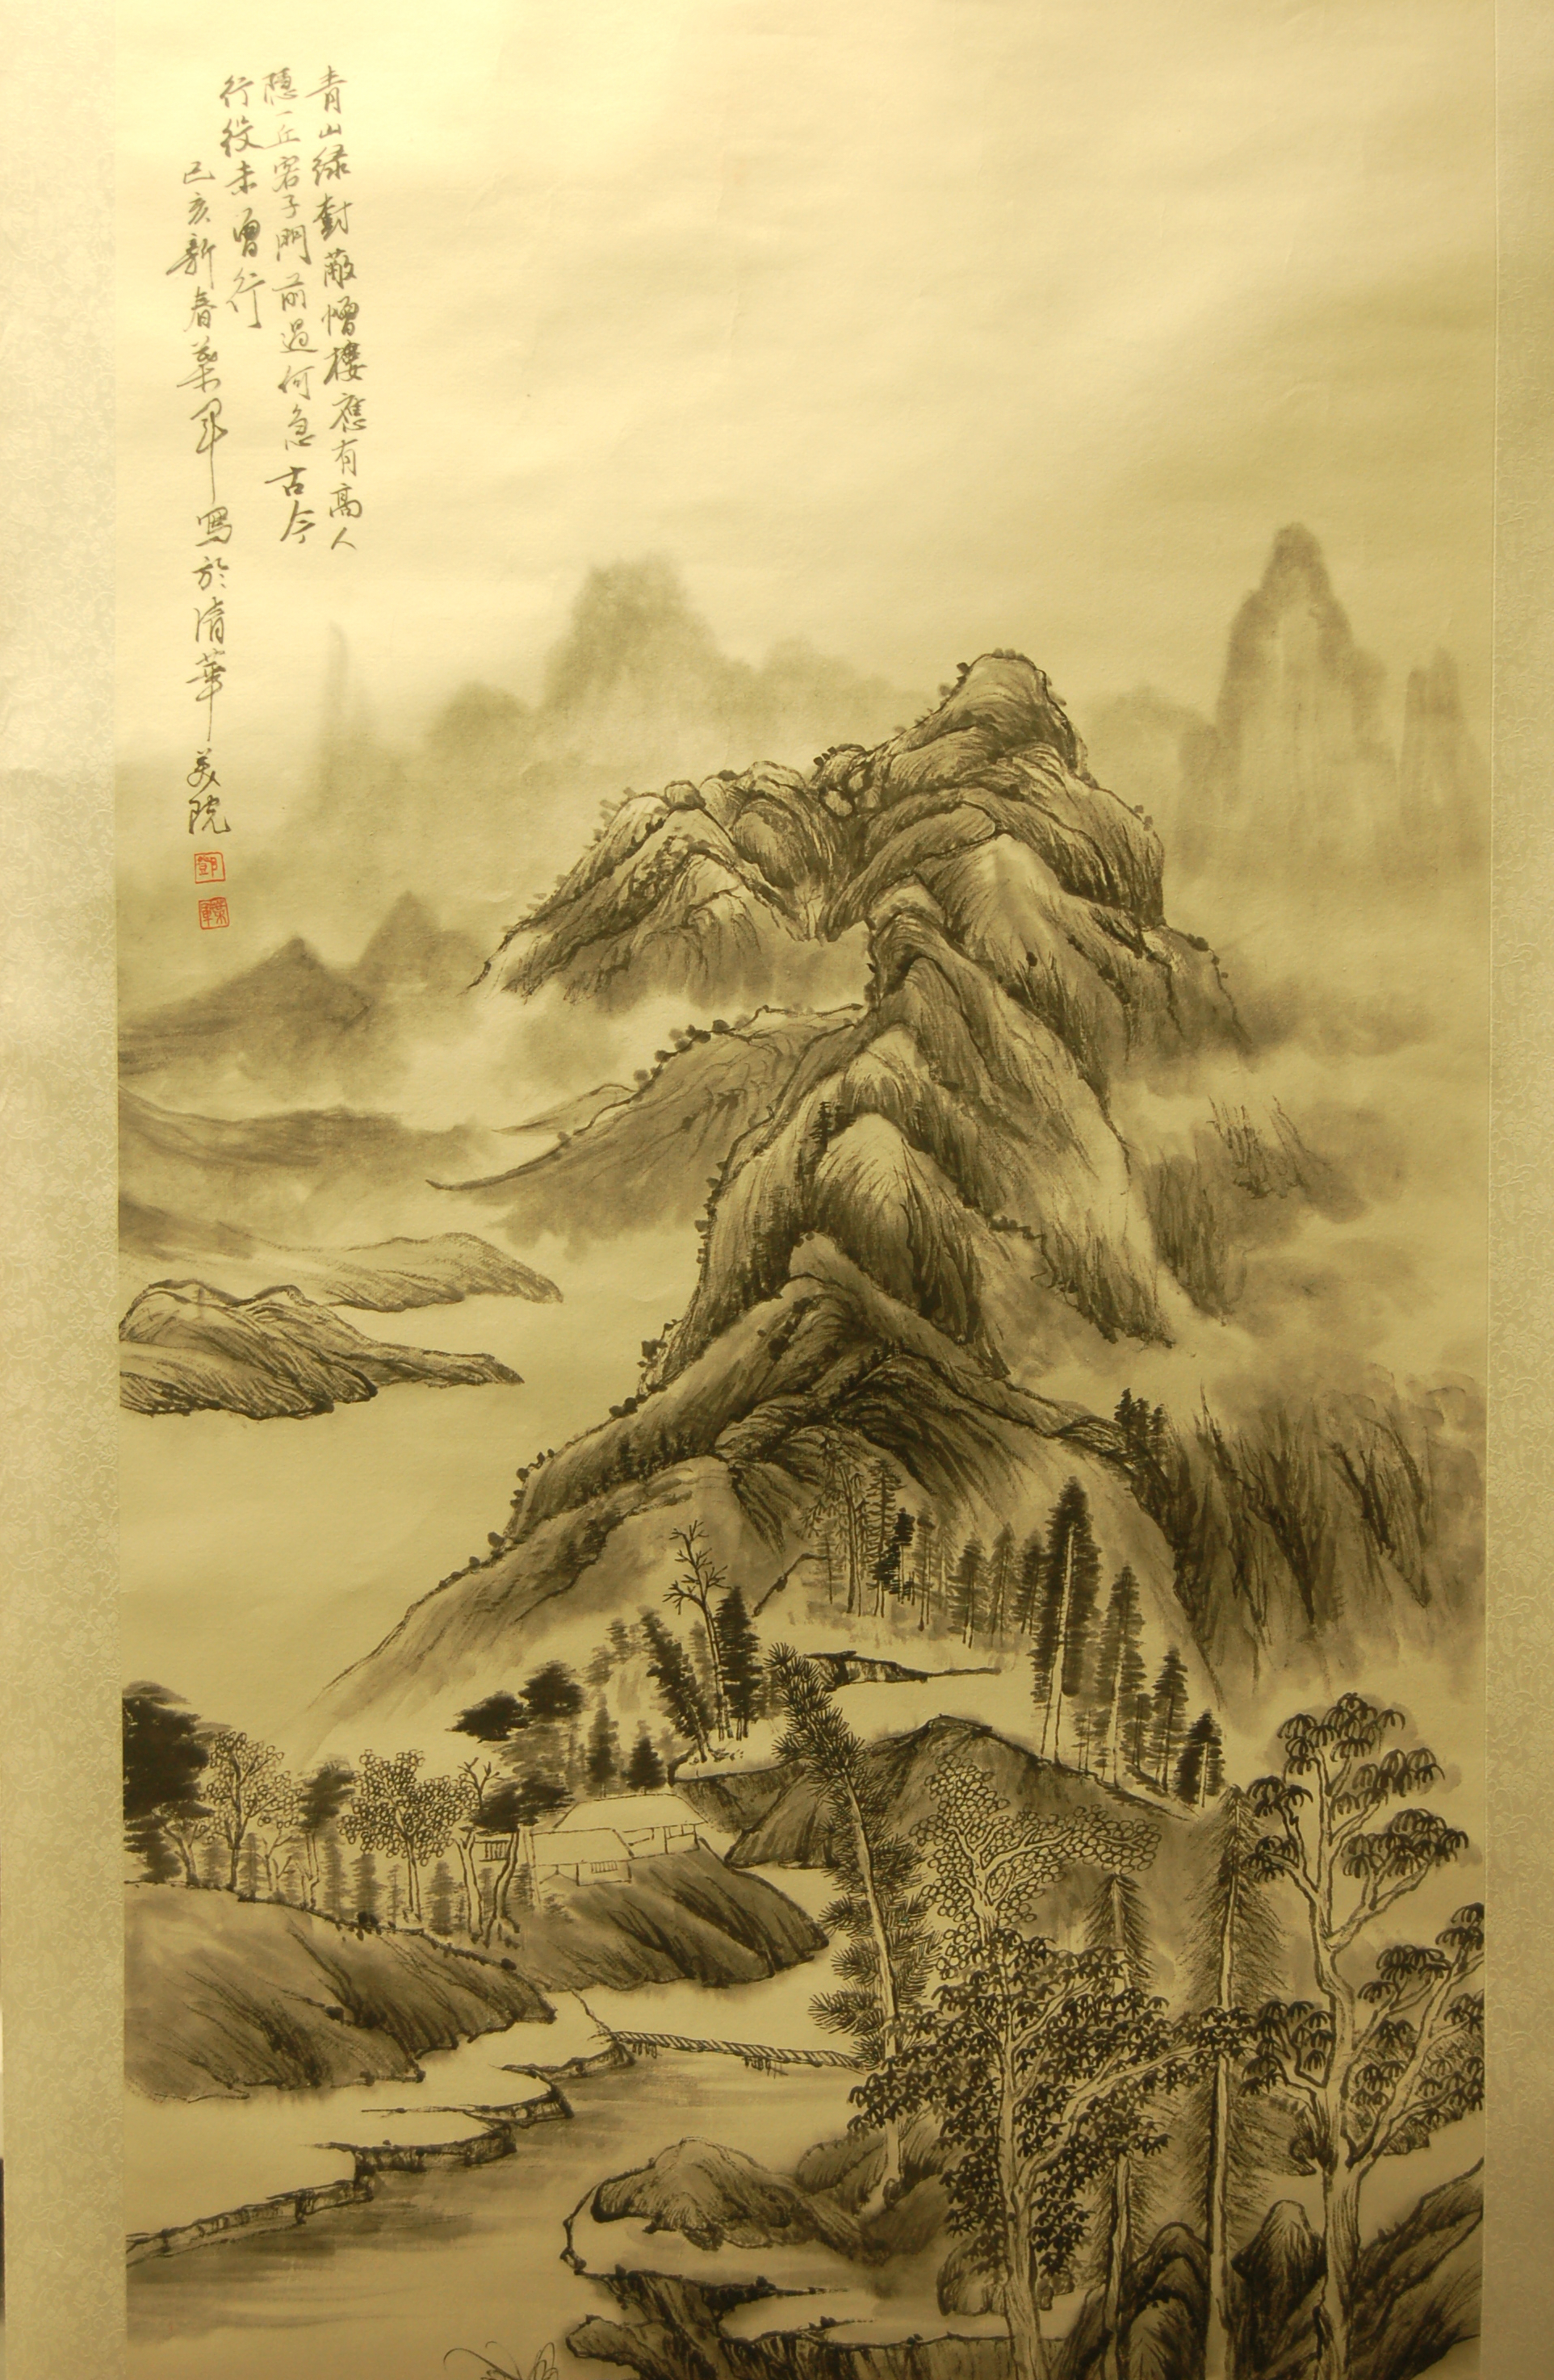 Chinese Brushstrokes